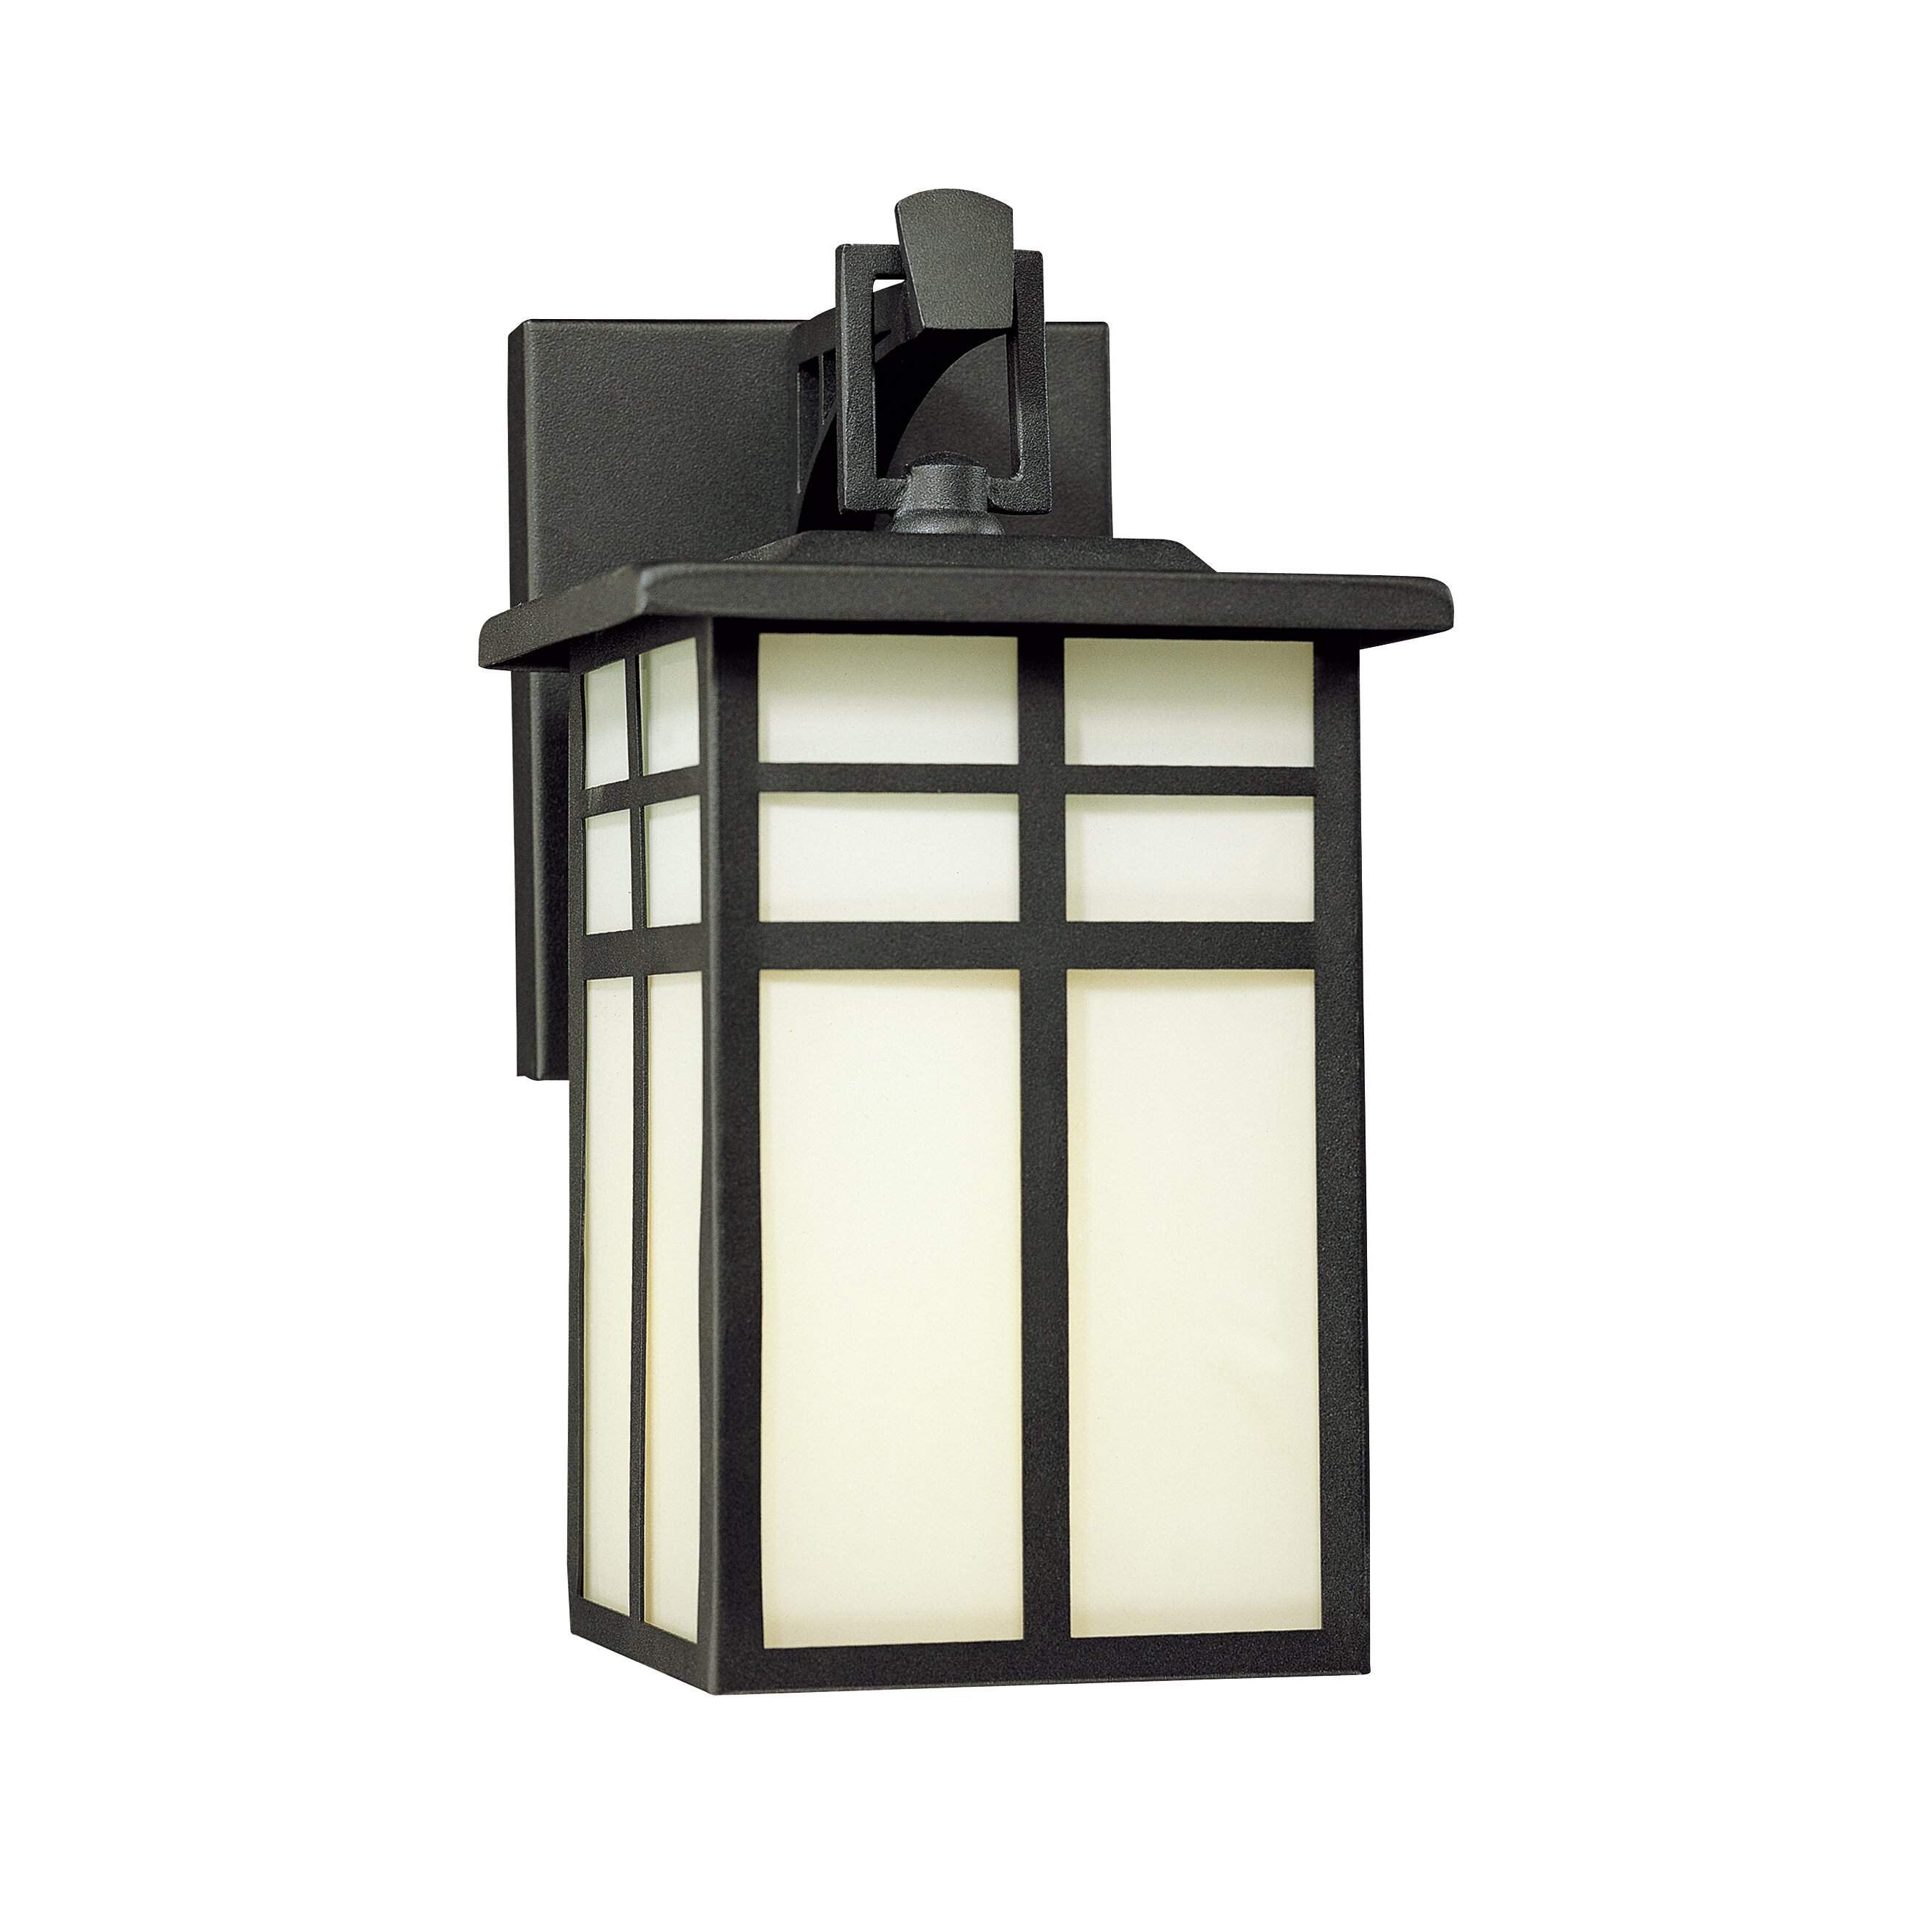 Wall Lantern External : Thomas Lighting Mission 1 Light Outdoor Wall Lantern & Reviews Wayfair